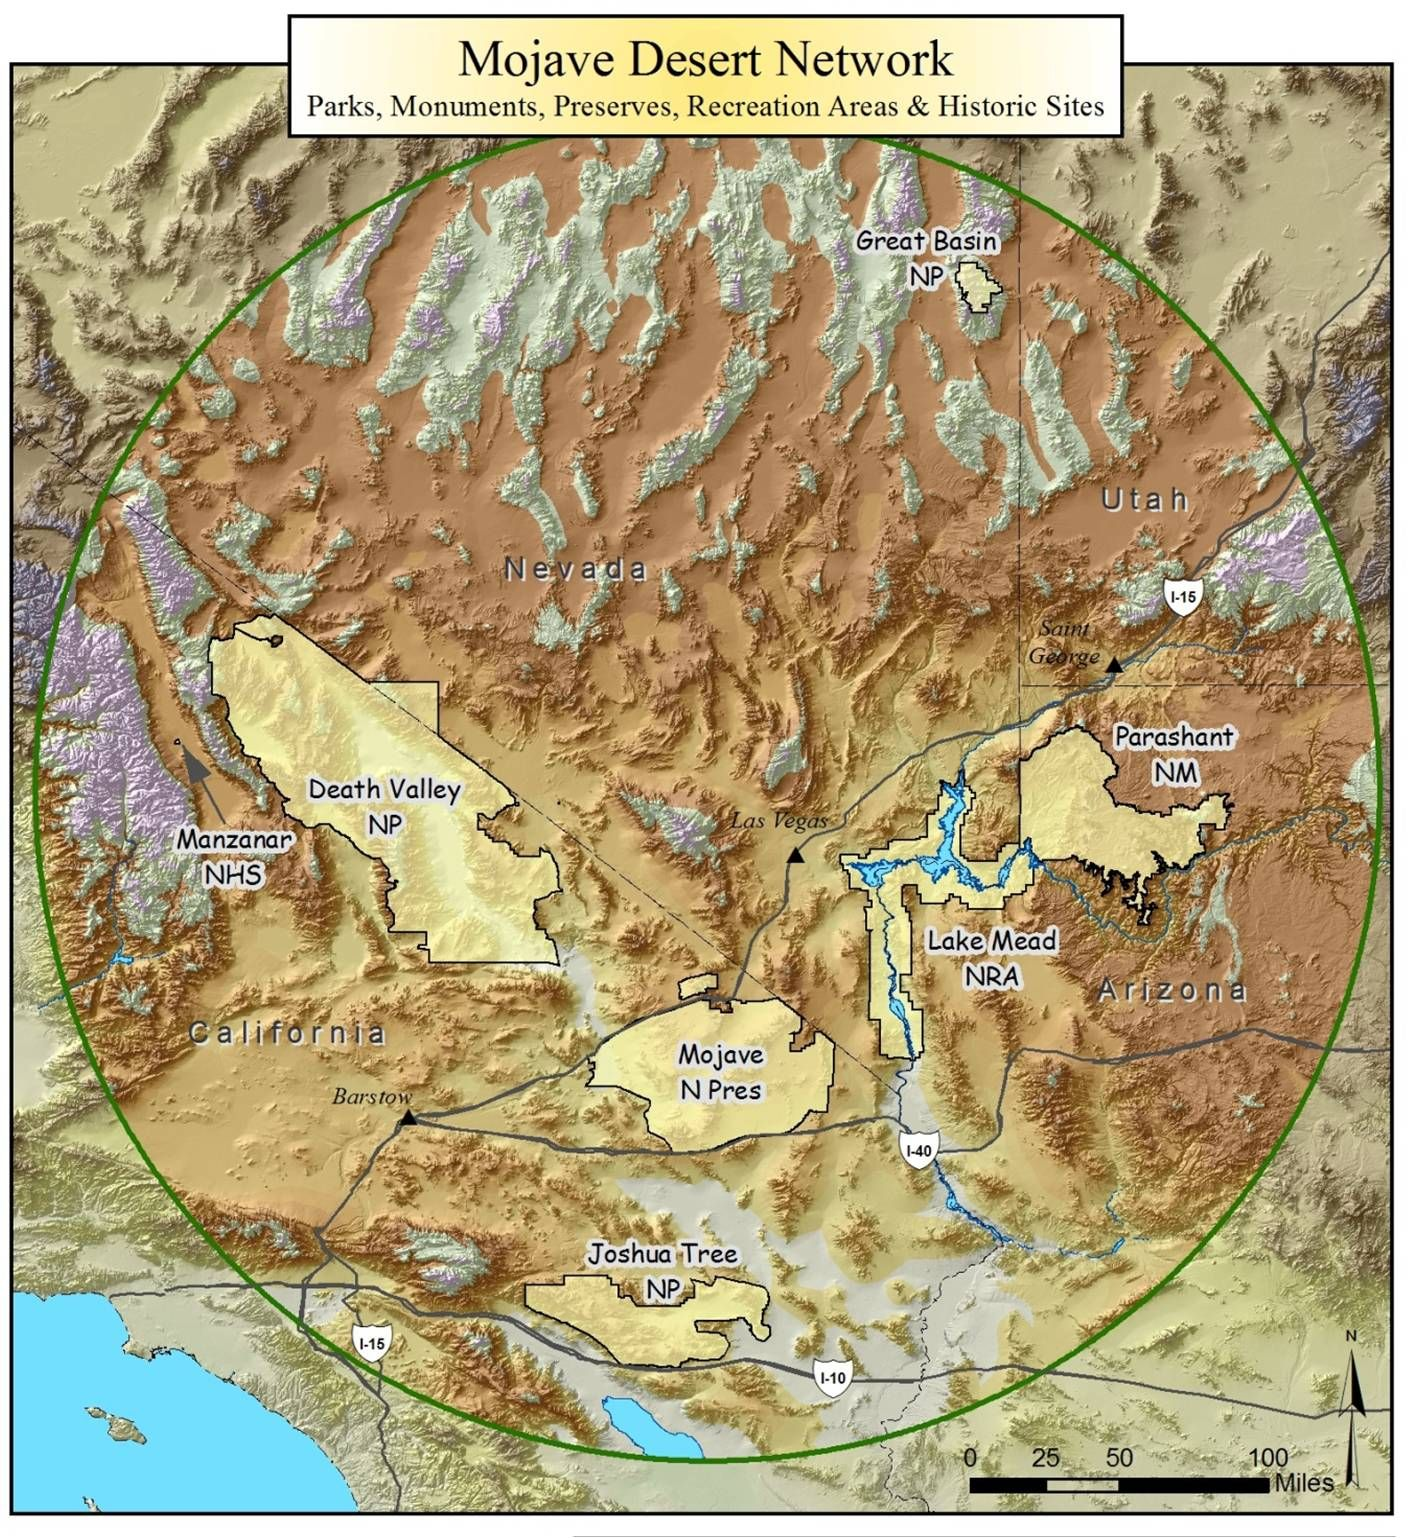 Mojave Desert Network Map of Area and Associated Parks